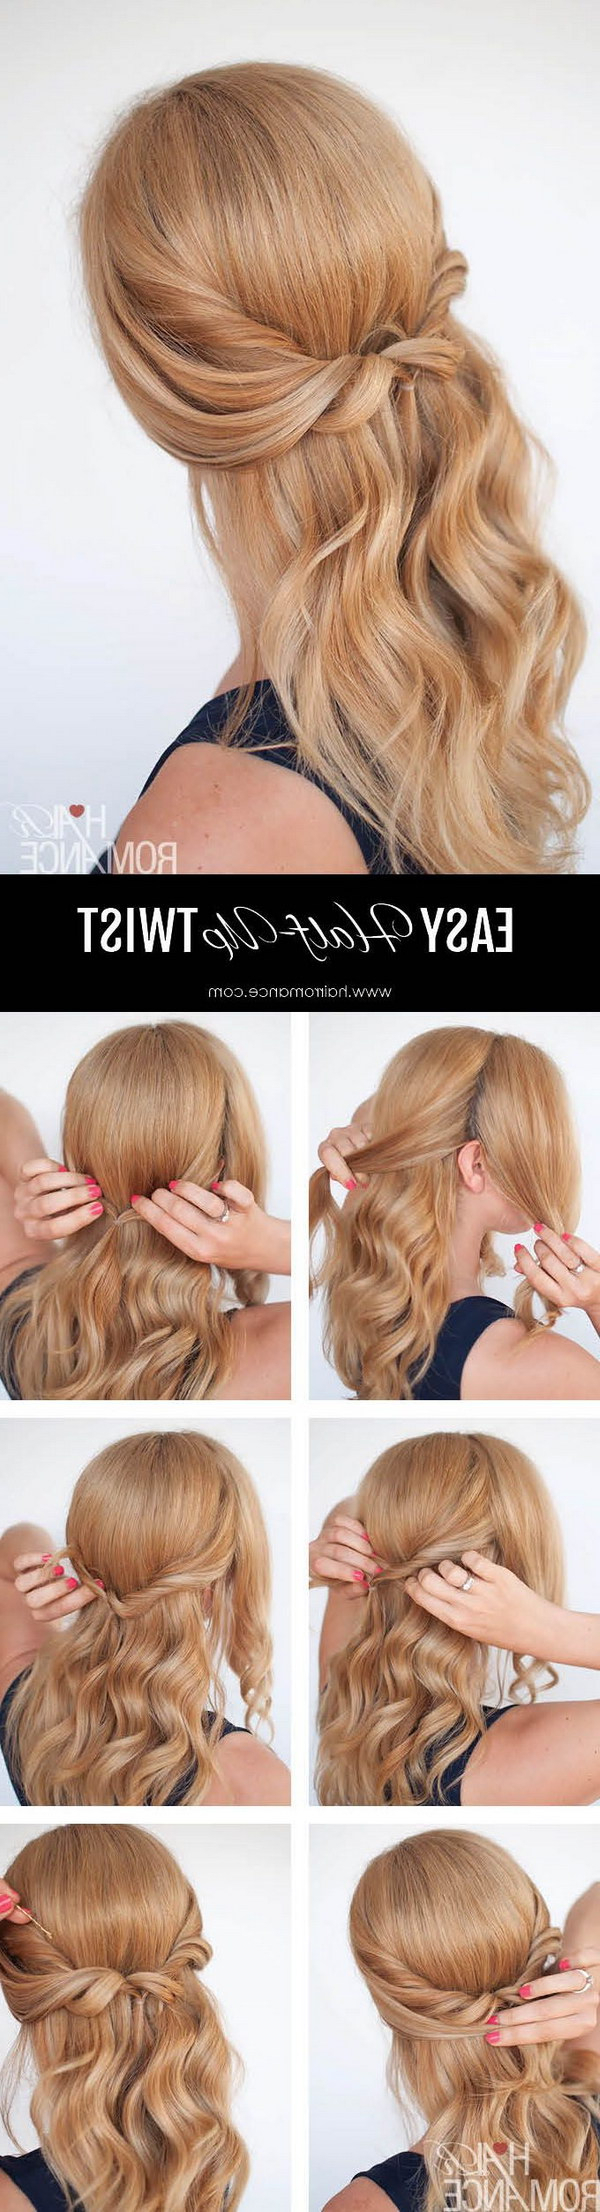 Popular Twisted And Pinned Half Up Wedding Hairstyles Pertaining To 55+ Stunning Half Up Half Down Hairstyles (View 14 of 20)